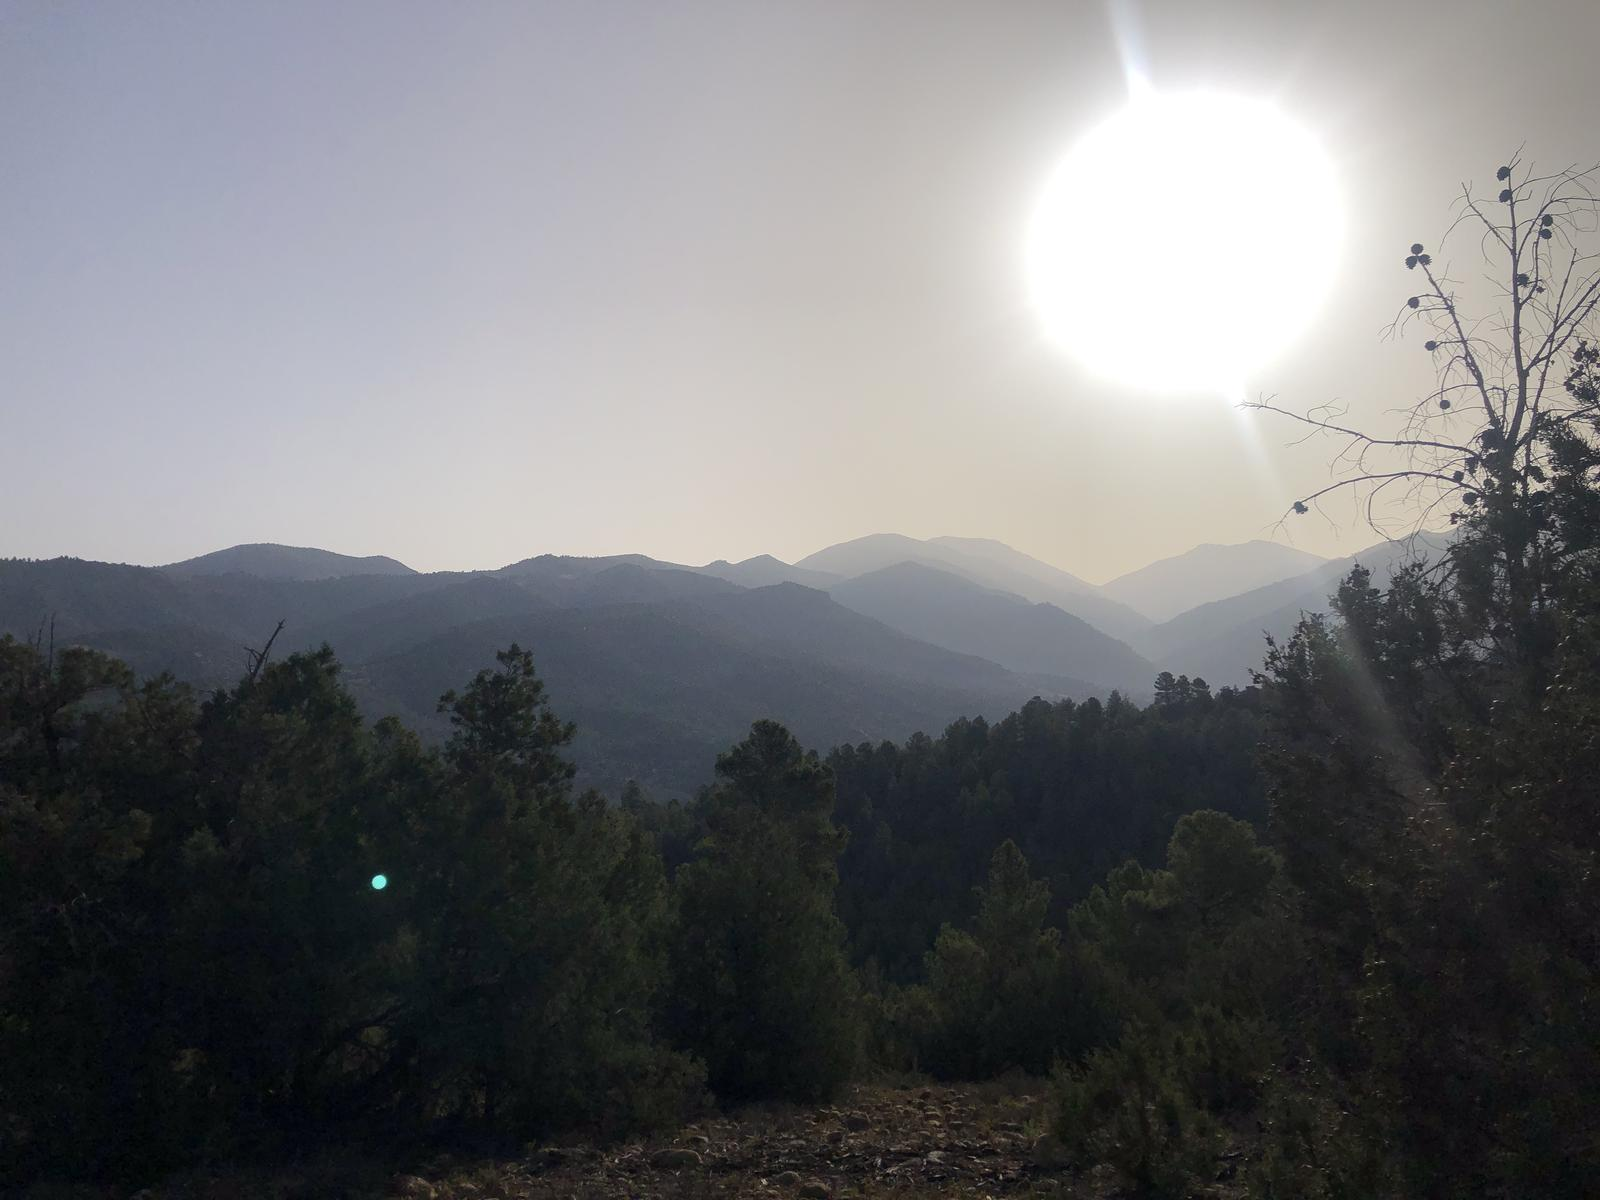 Photo of Imsfrane to Timrazine from Ahensal and Taghia village